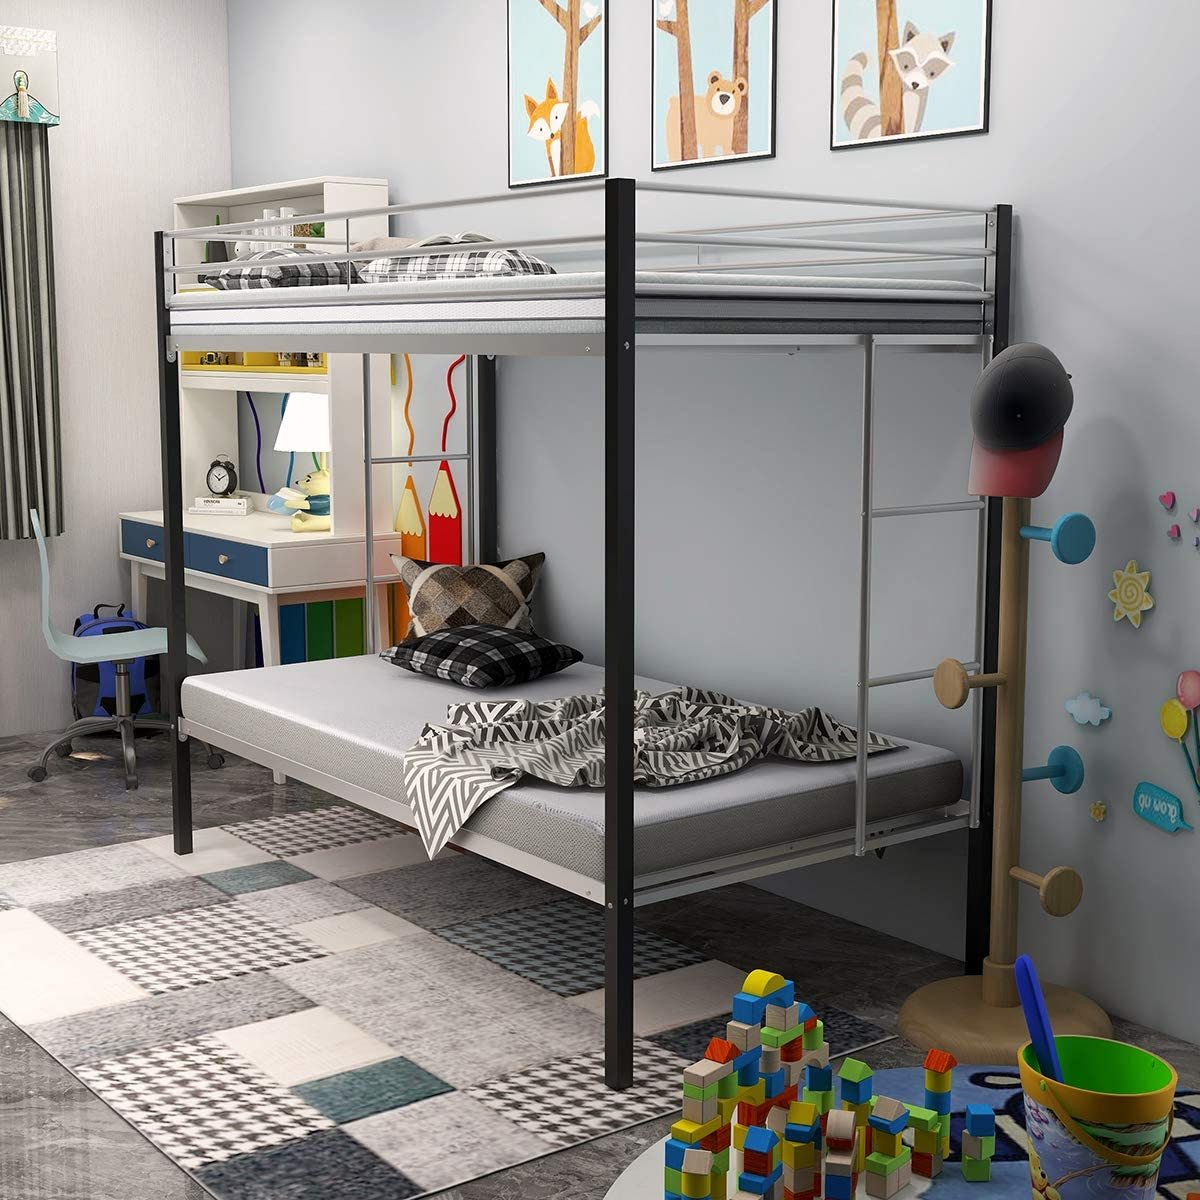 Bunk Beds Under $100 $150 $200 & $300 - JURMERRY Bunk Bed – Twin-over-Twin